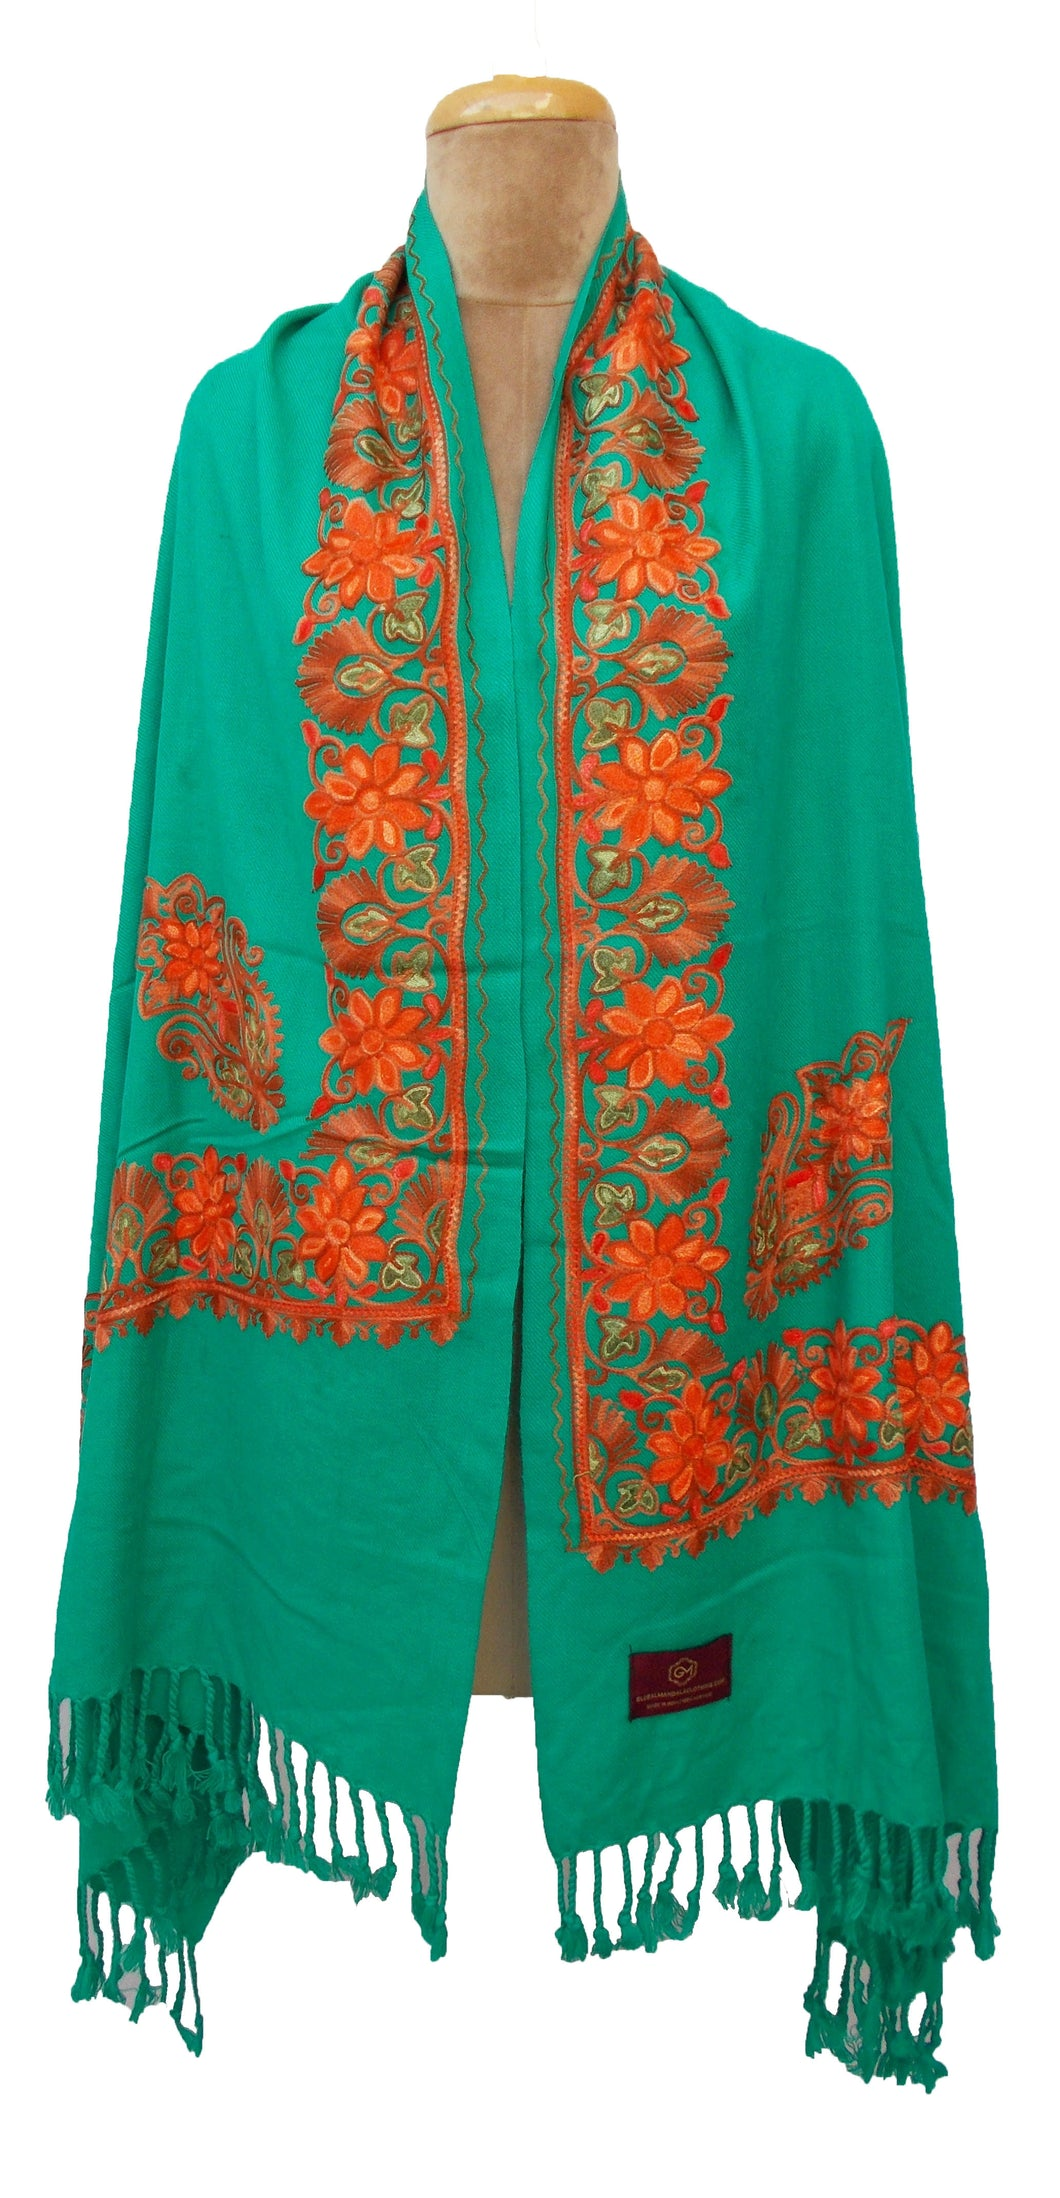 The Oriental Garden Embroidered Shawl S22